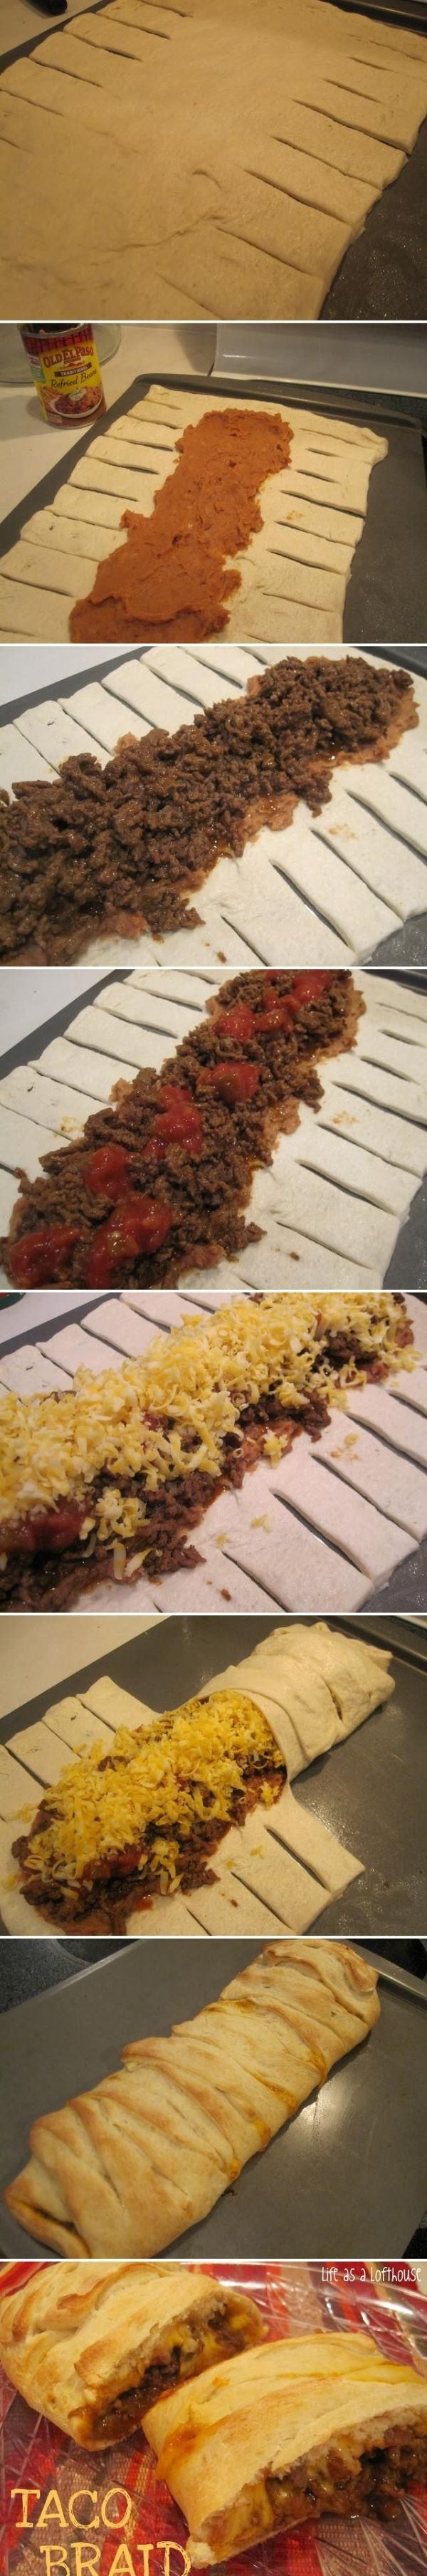 Ever heard of a braid? Here's a taco braid with step-by-step instructions. Quick and easy using Pillsbury Pizza Dough! Click for step-by-step-instructions. by Laura Anthony